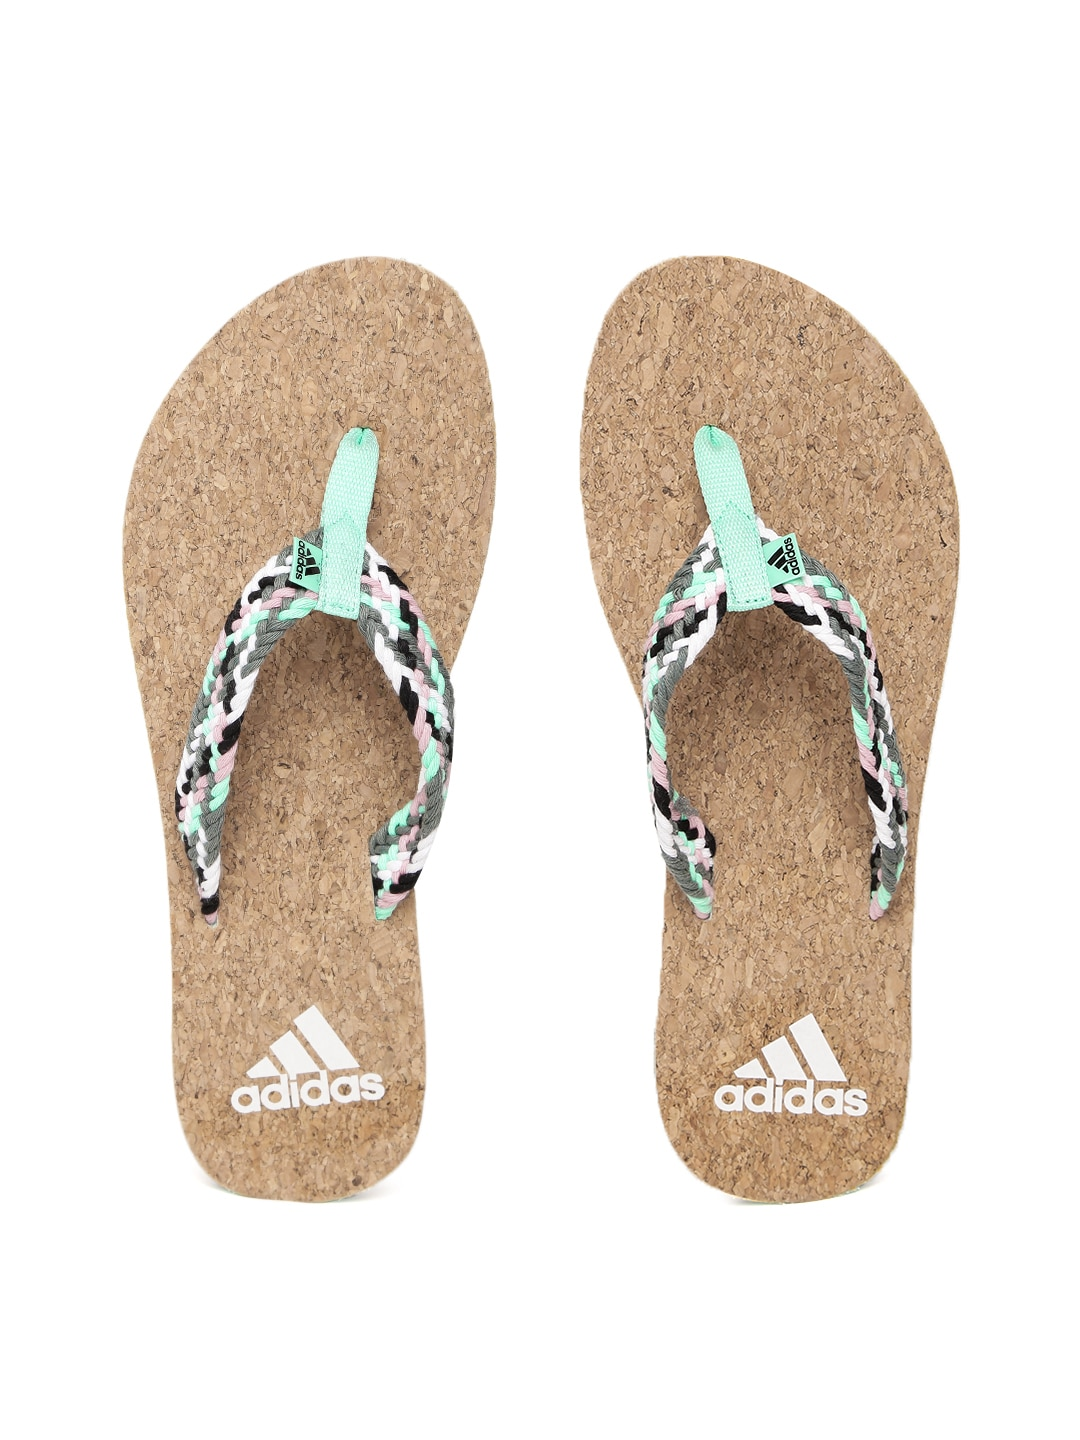 Women s Adidas Flip Flops - Buy Adidas Flip Flops for Women Online in India c0dfa8730a